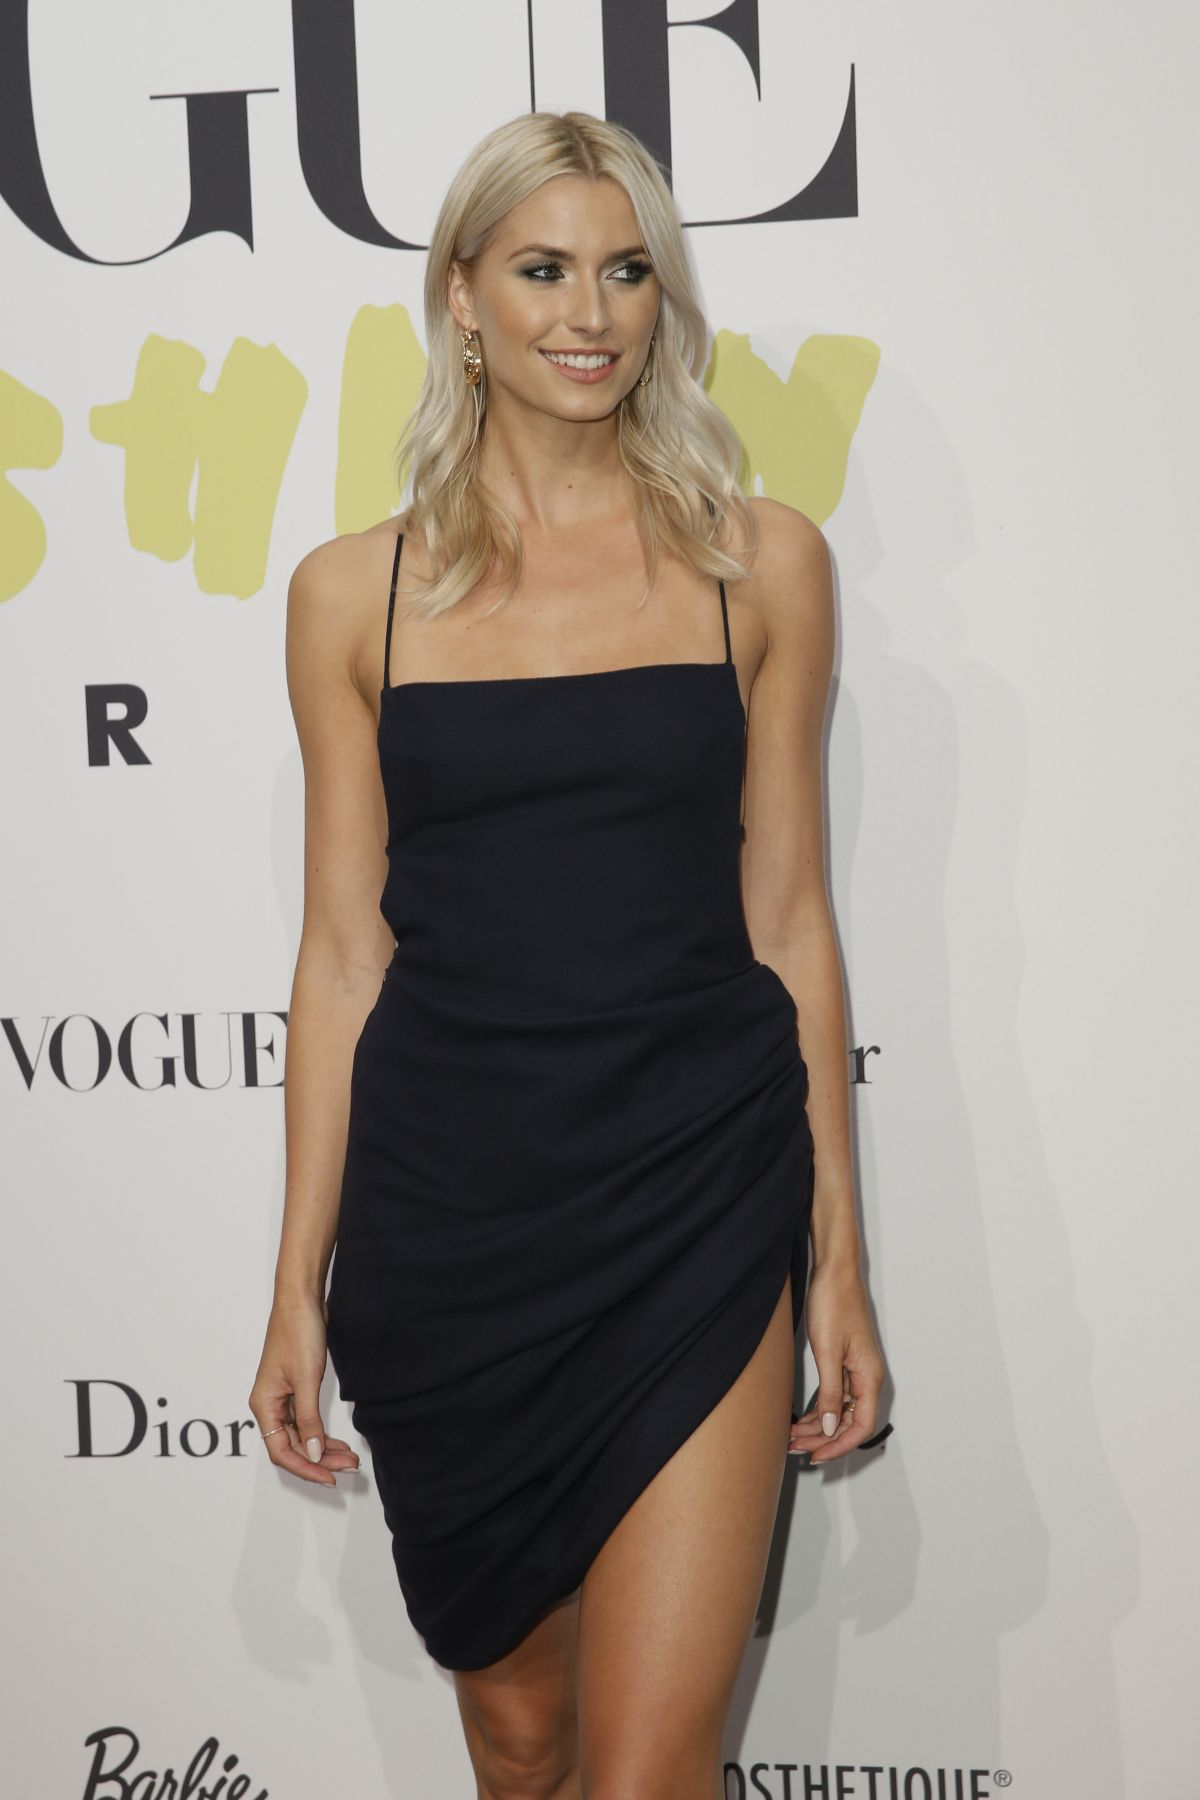 Lena Gercke At Vogue Celebrating 40 Years Party In Berlin